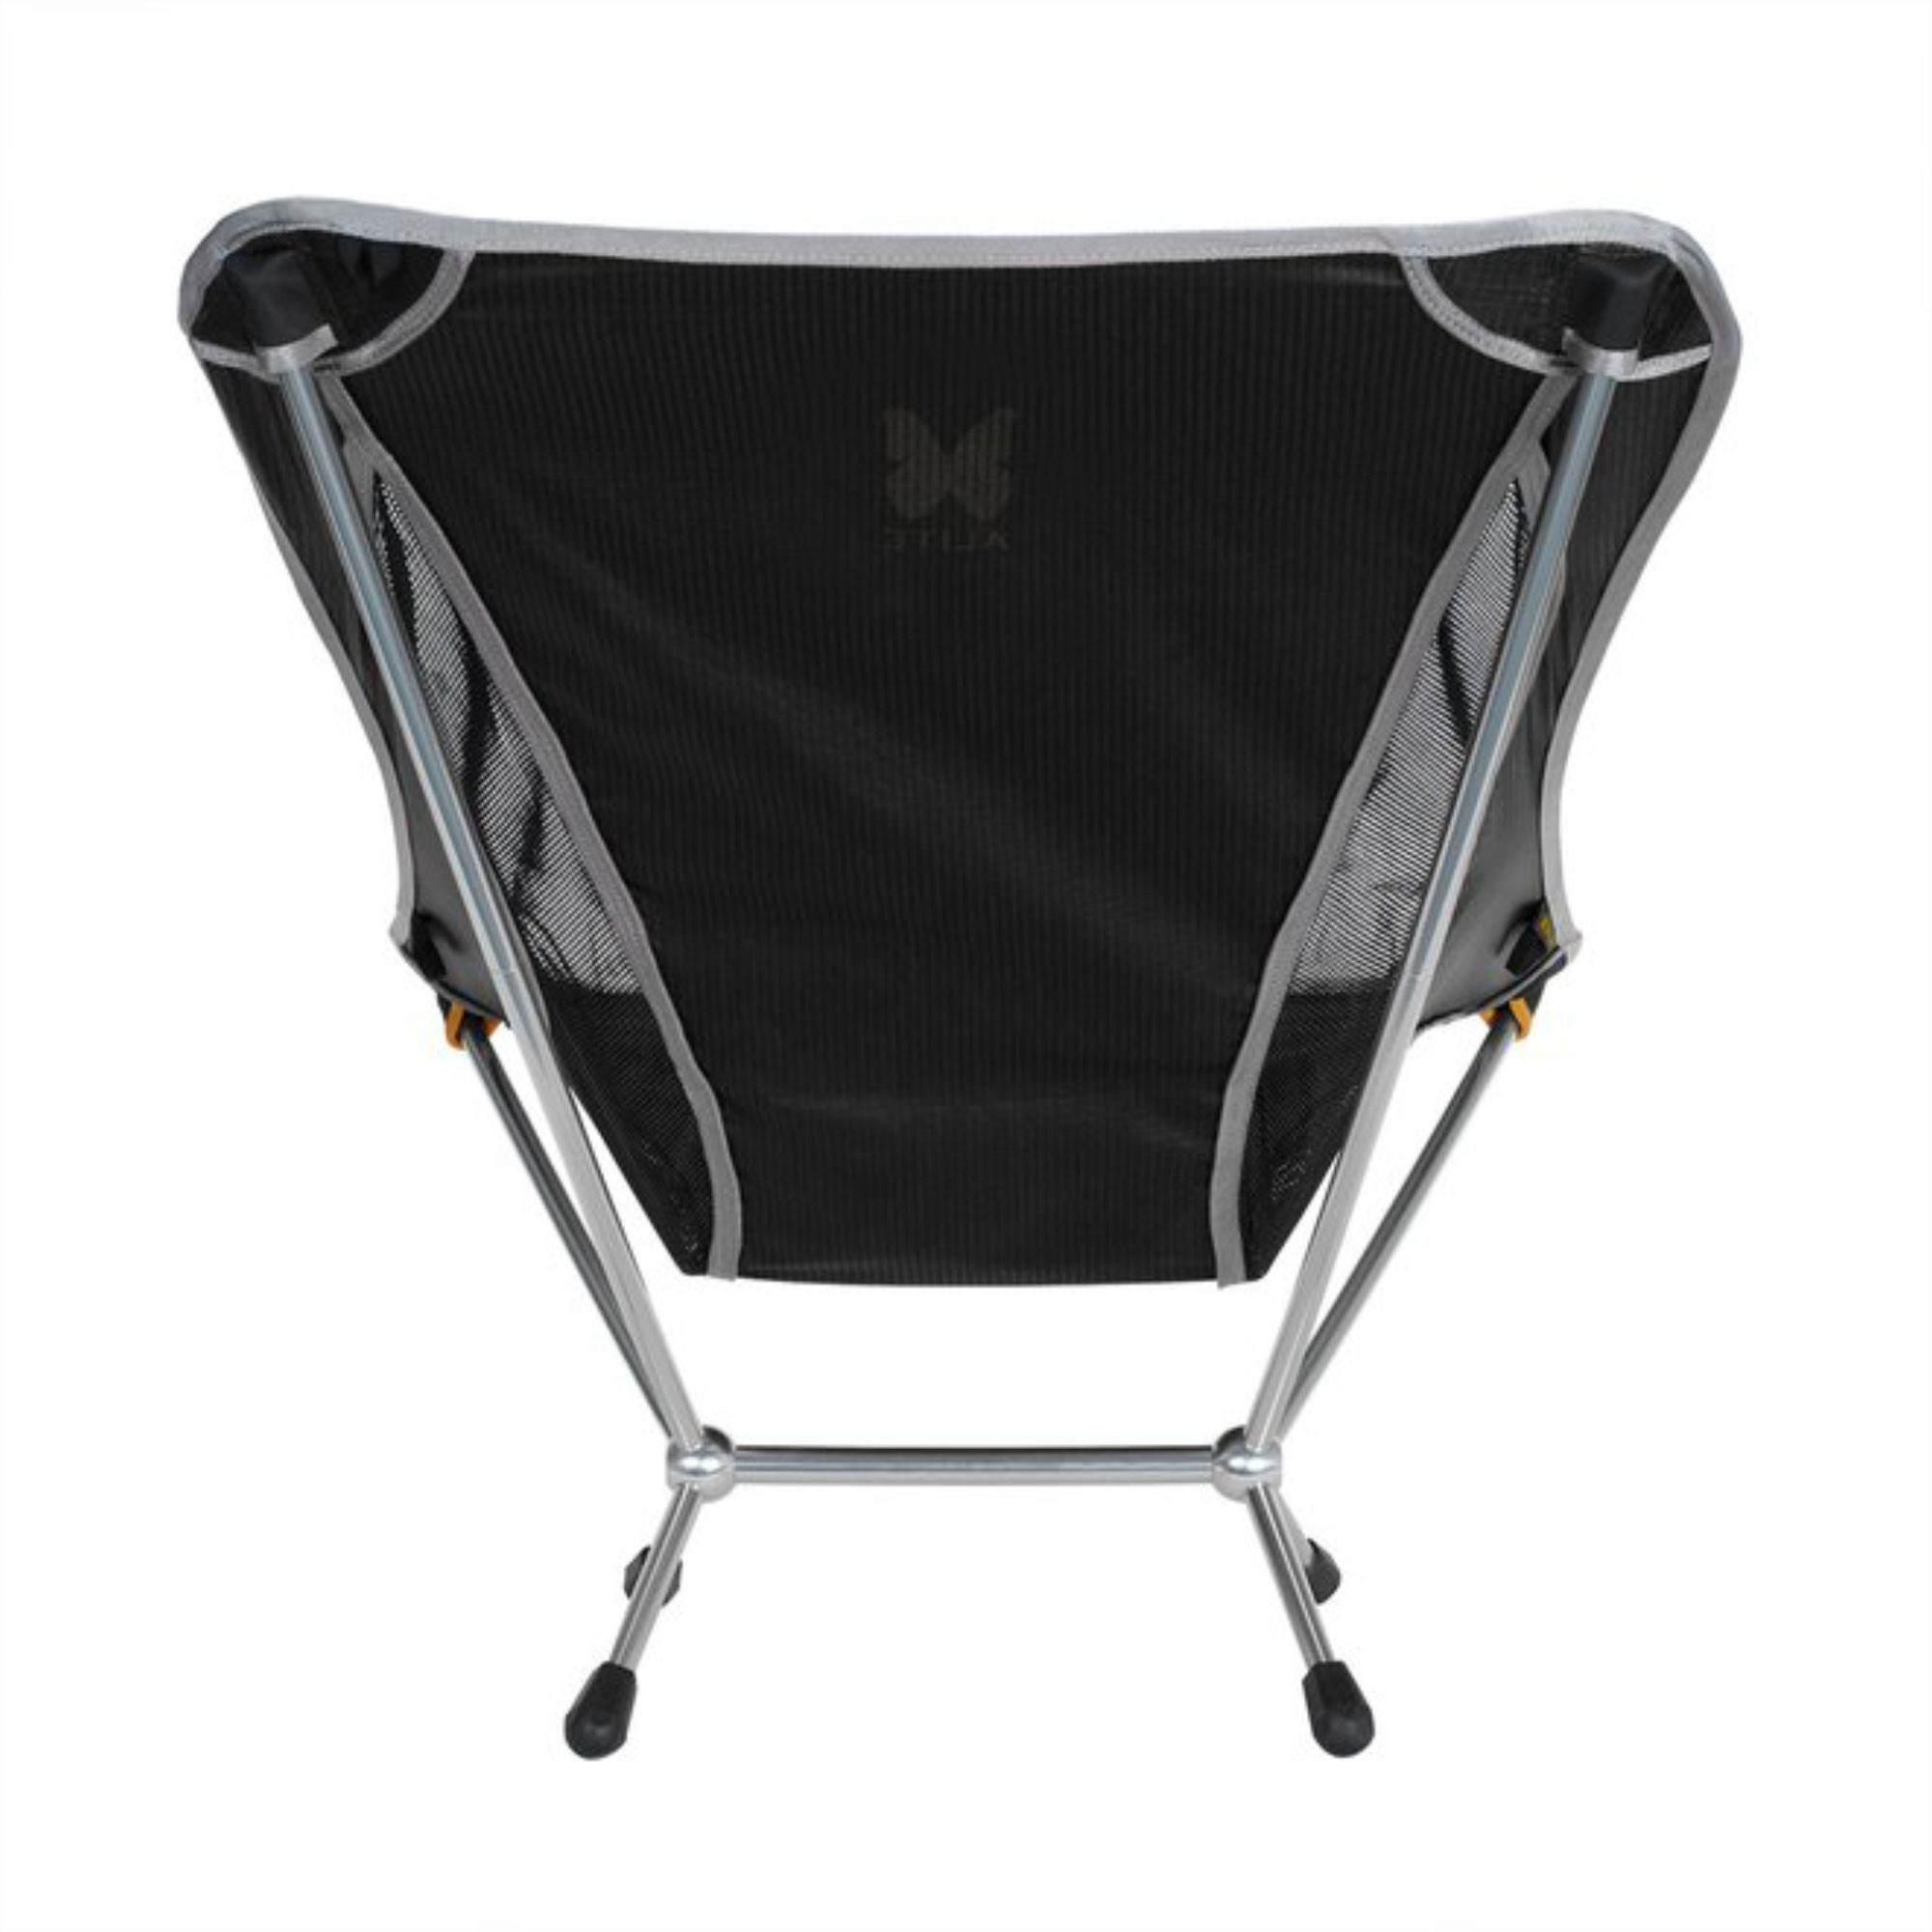 Alite-Designs-Mantis-Camping-Chair-Back-Black.jpg